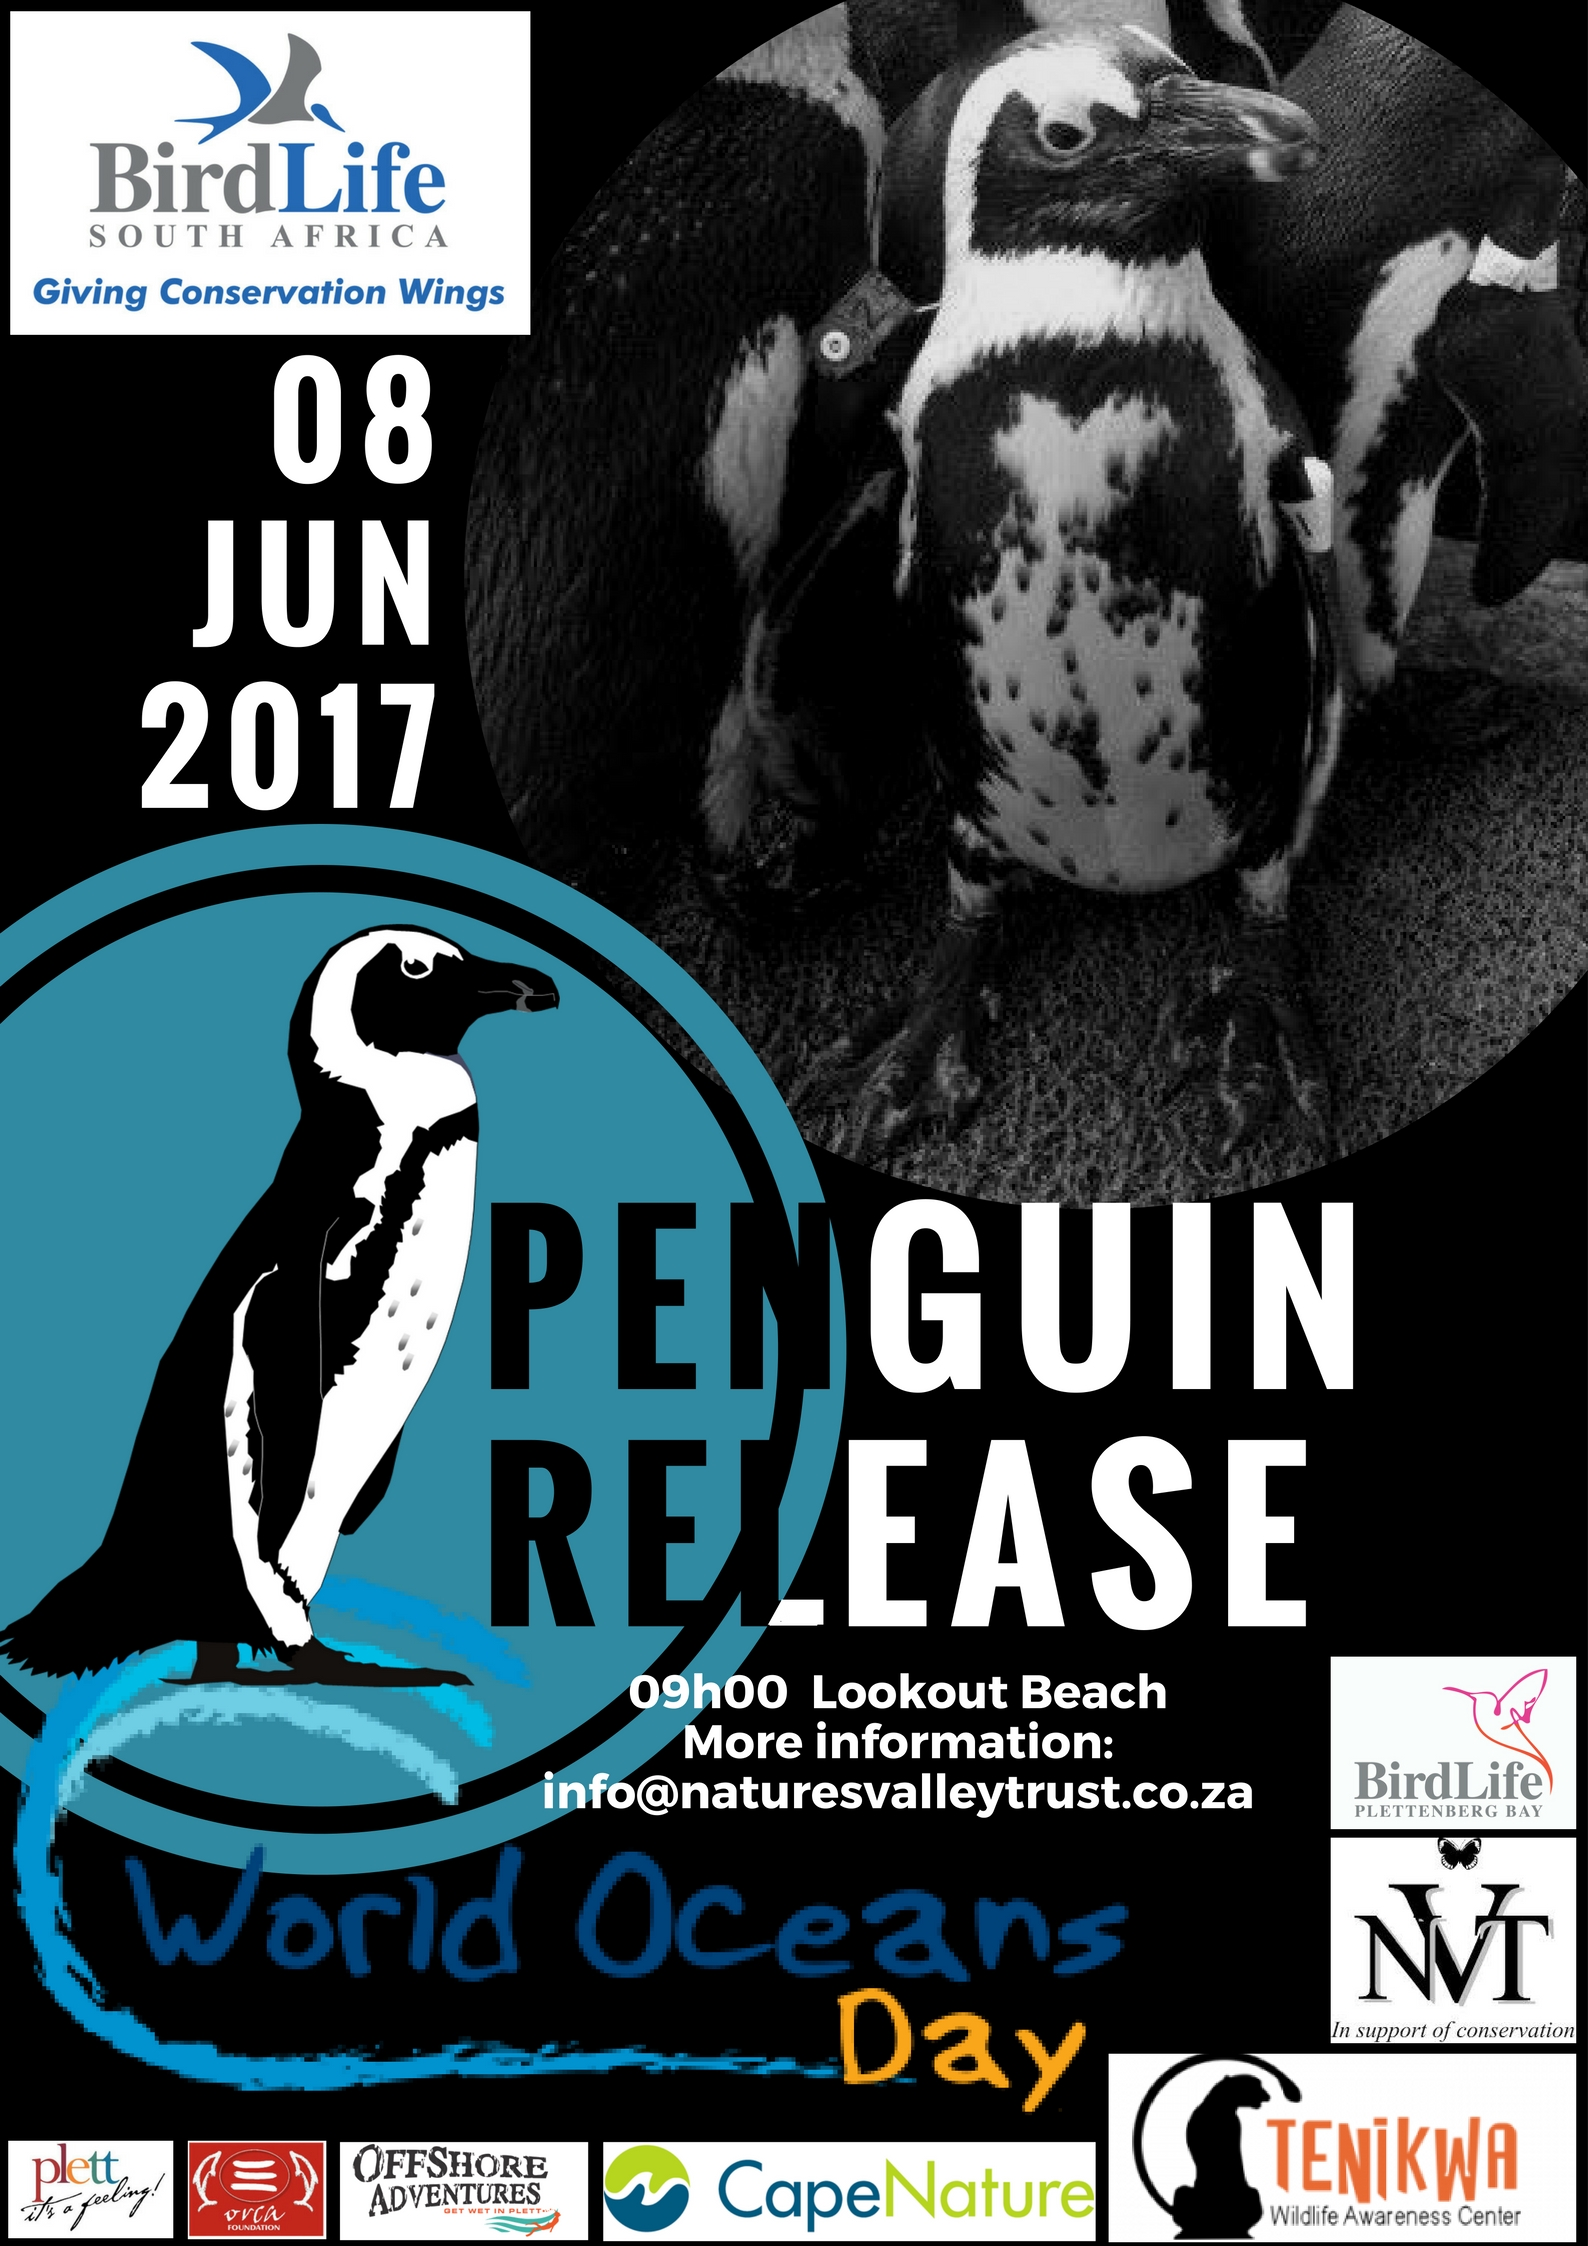 Release of African Penguins in Plettenberg Bay  on World Oceans Day